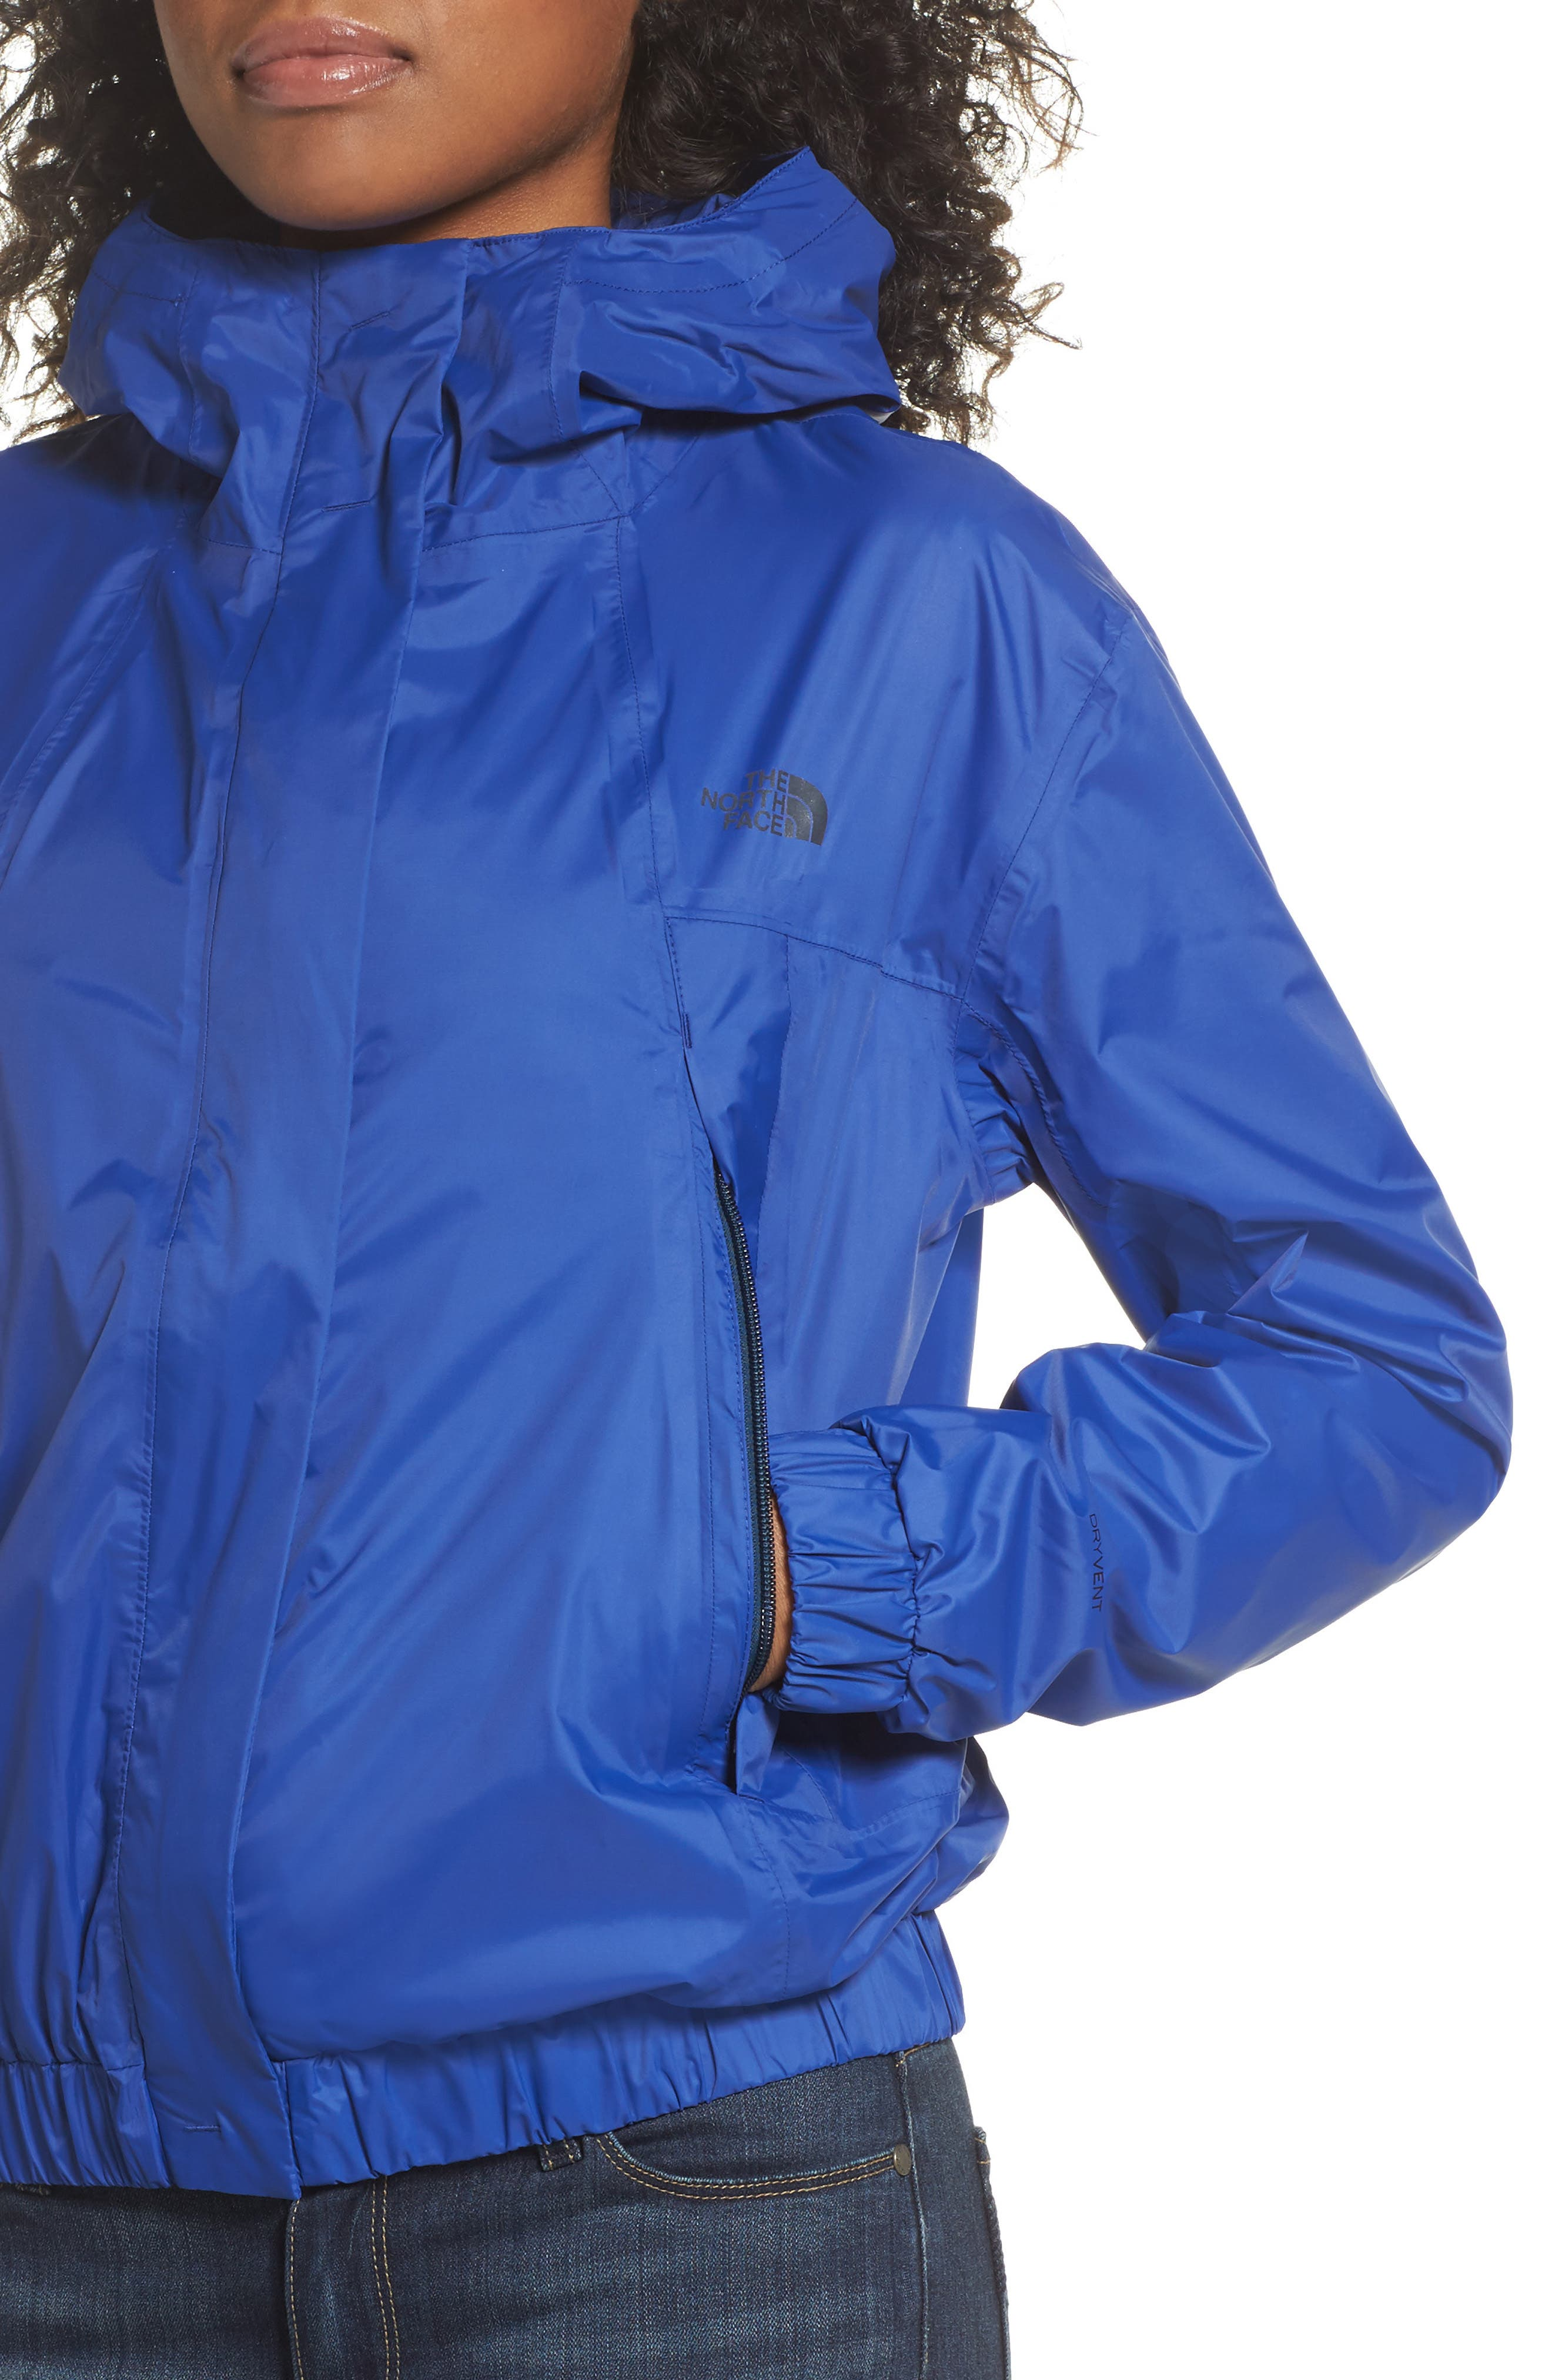 Precita Rain Jacket,                             Alternate thumbnail 4, color,                             Sodalite Blue